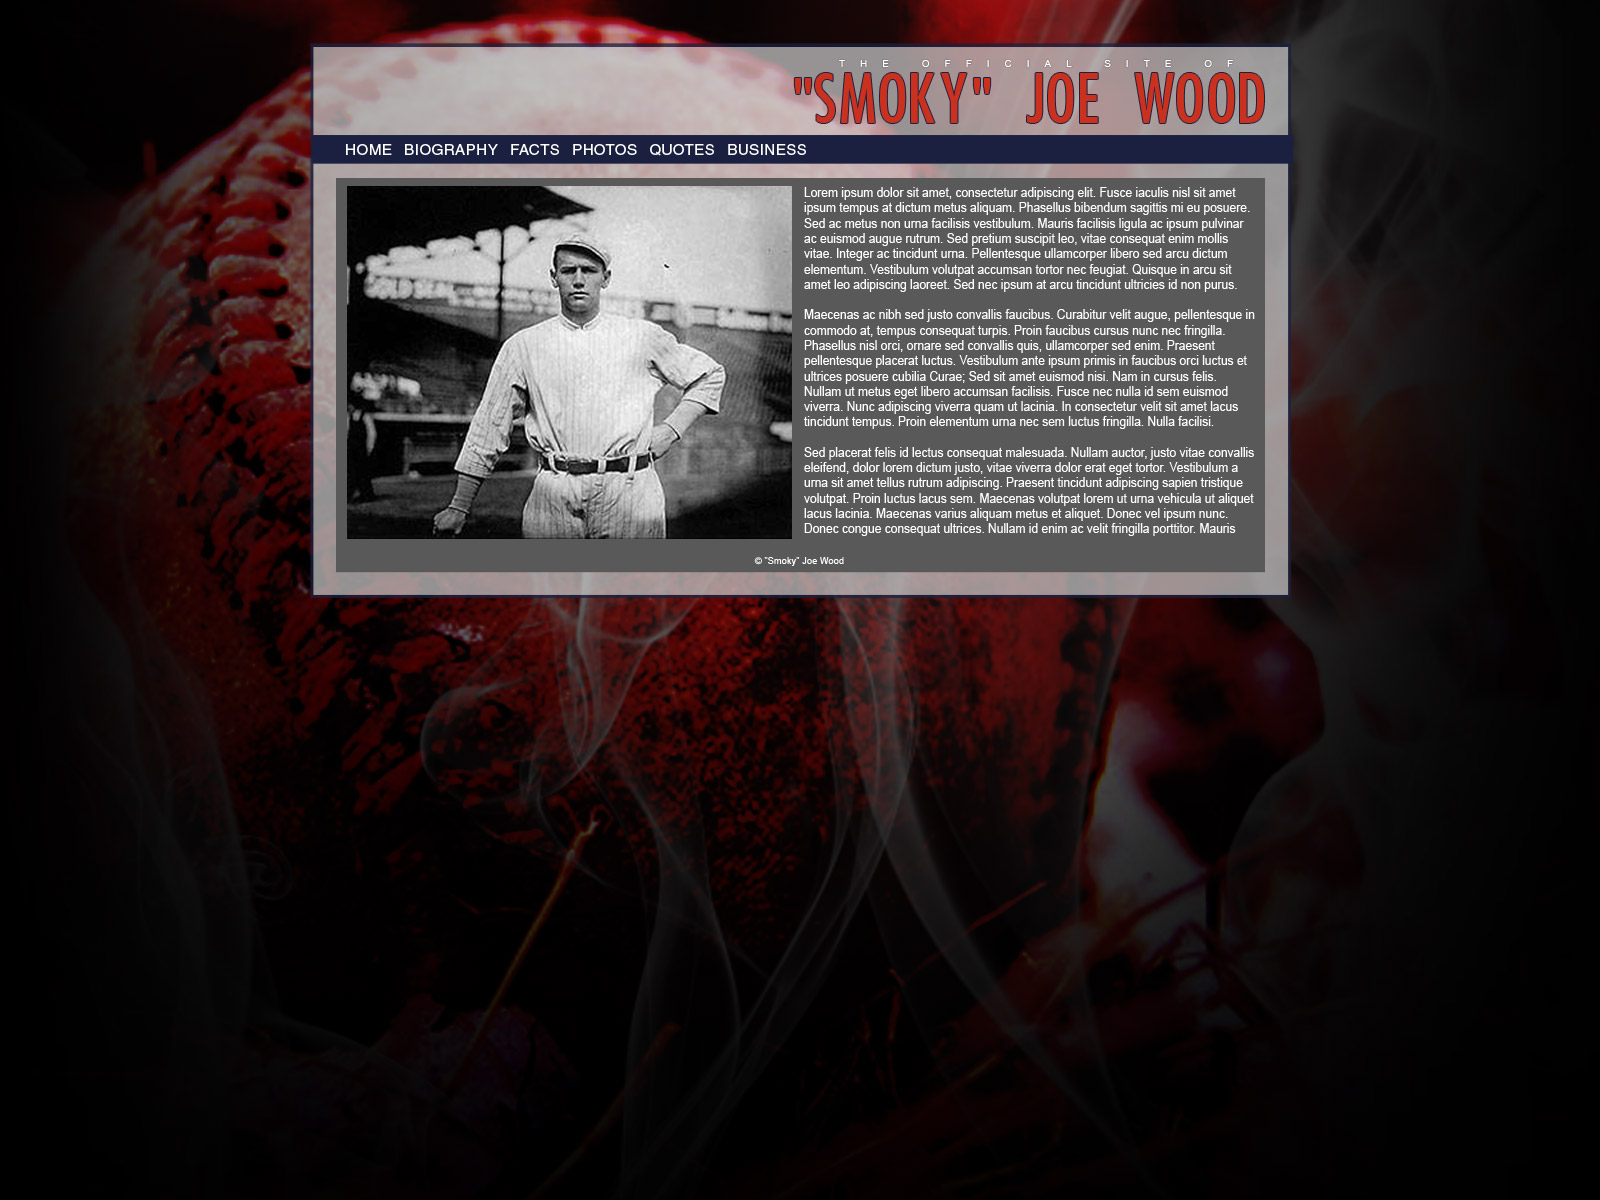 'Smoky' Joe Wood